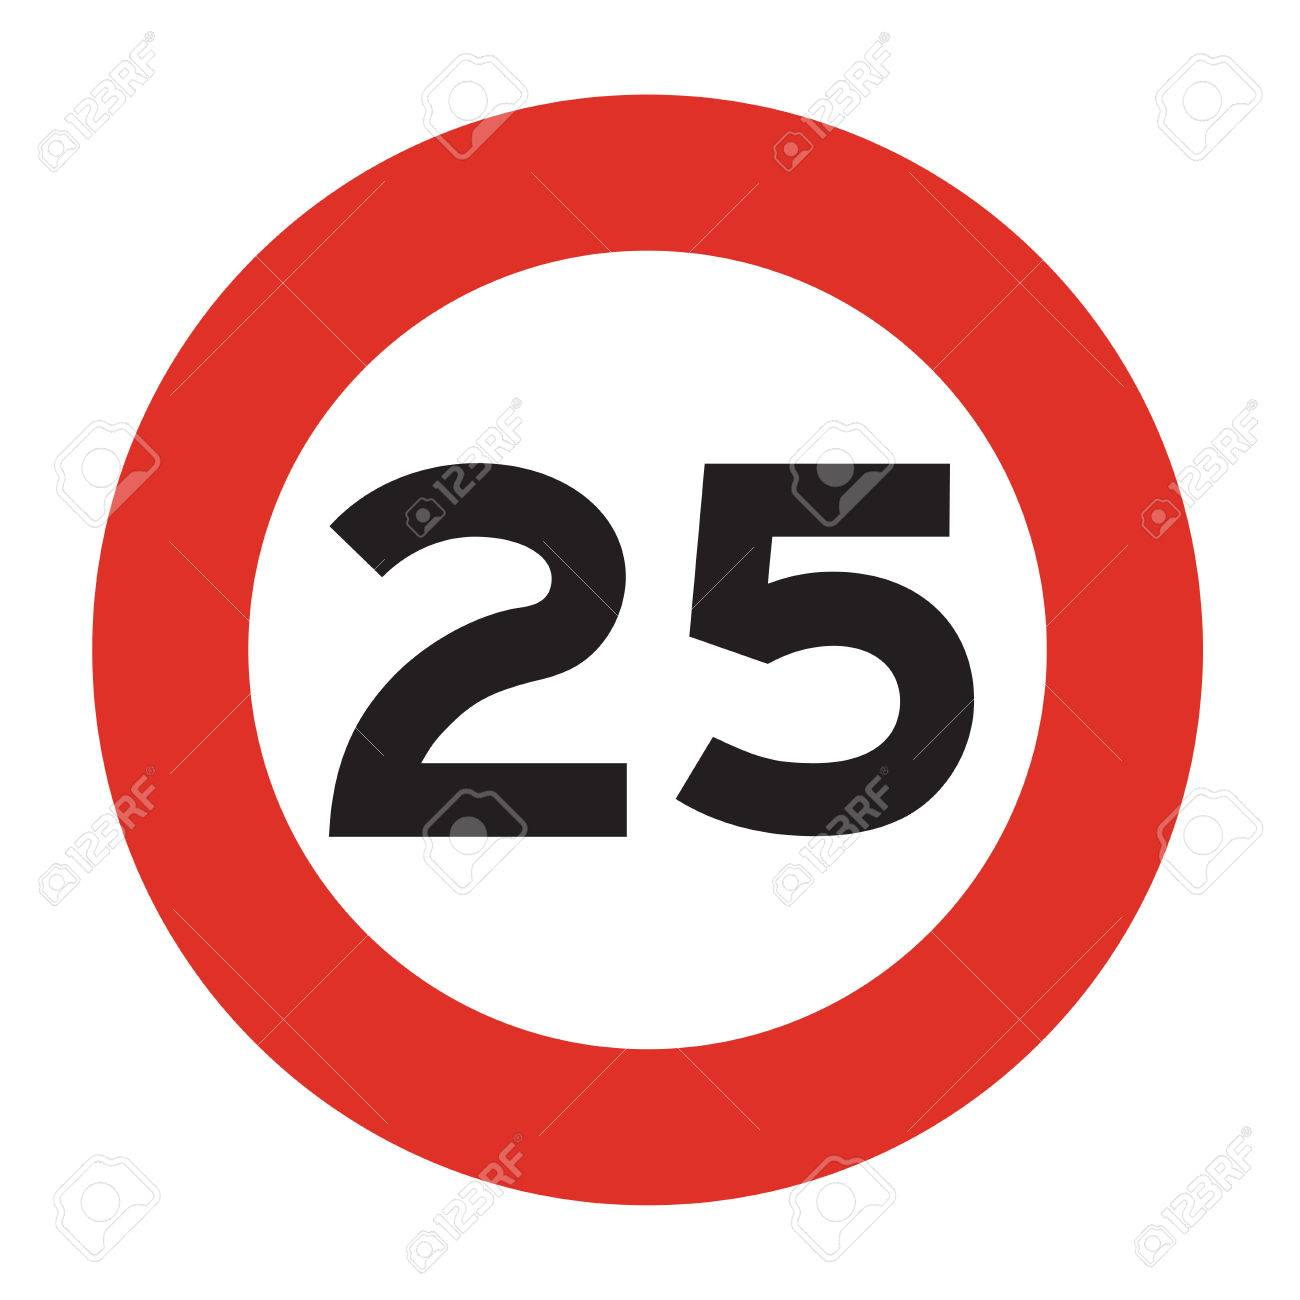 1300x1300 Maximum Speed Is 25 Kmh. Speed Limit Road Sign. Vector